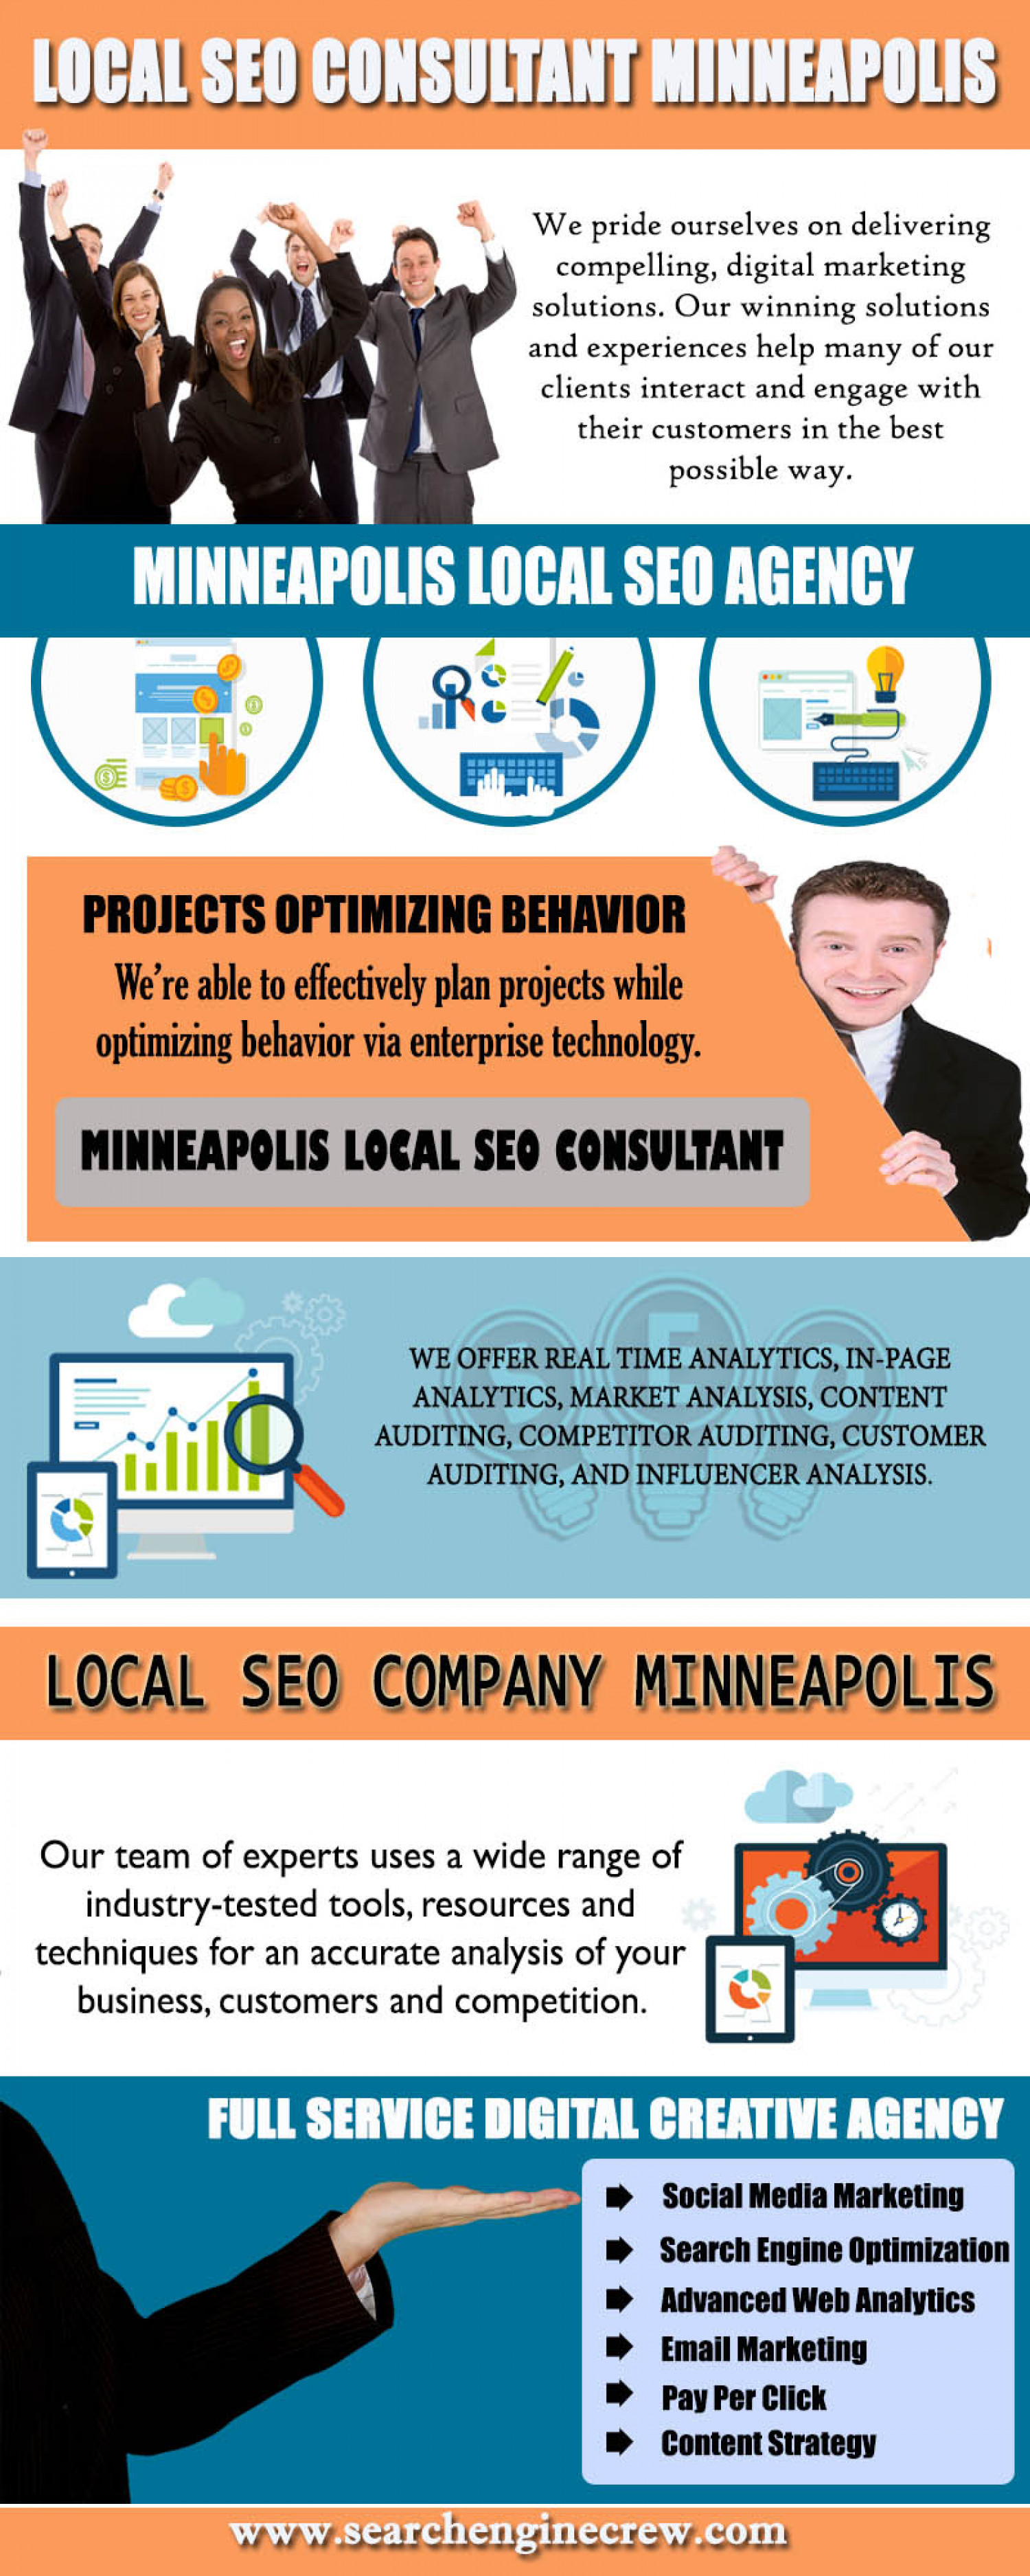 Digital Marketing Agency Minneapolis